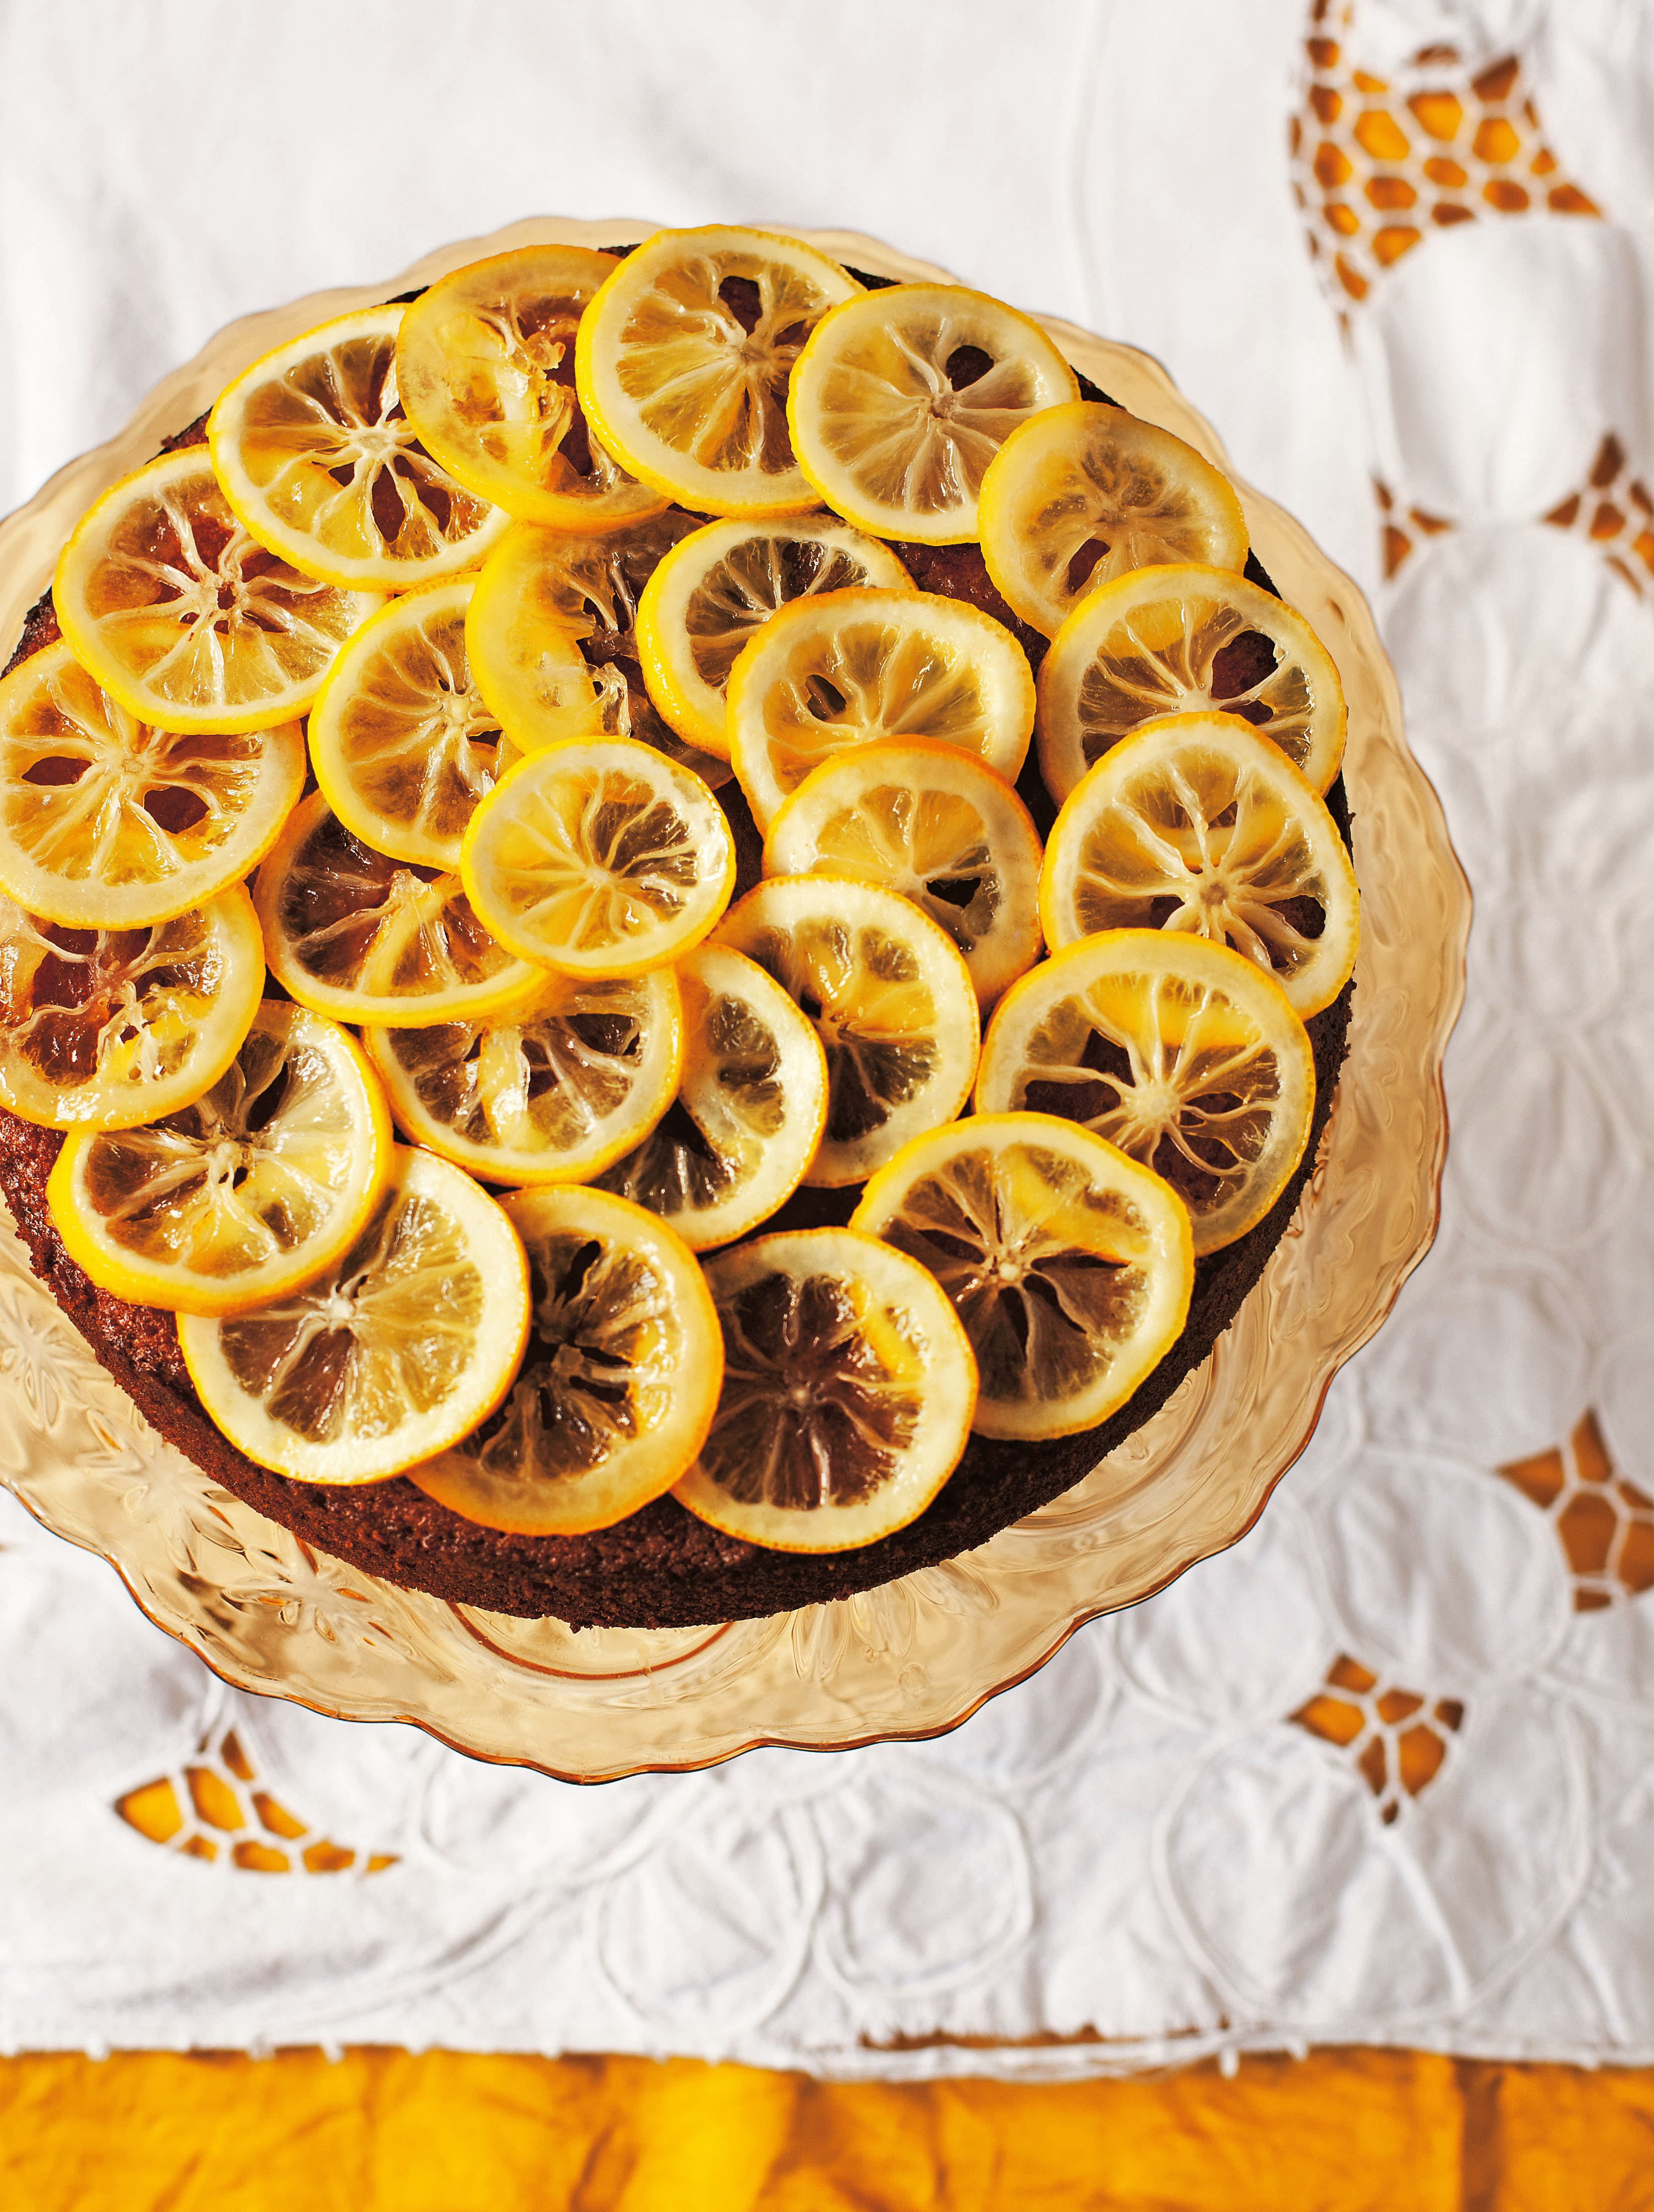 Flourless lemon polenta cake with limoncello syrup